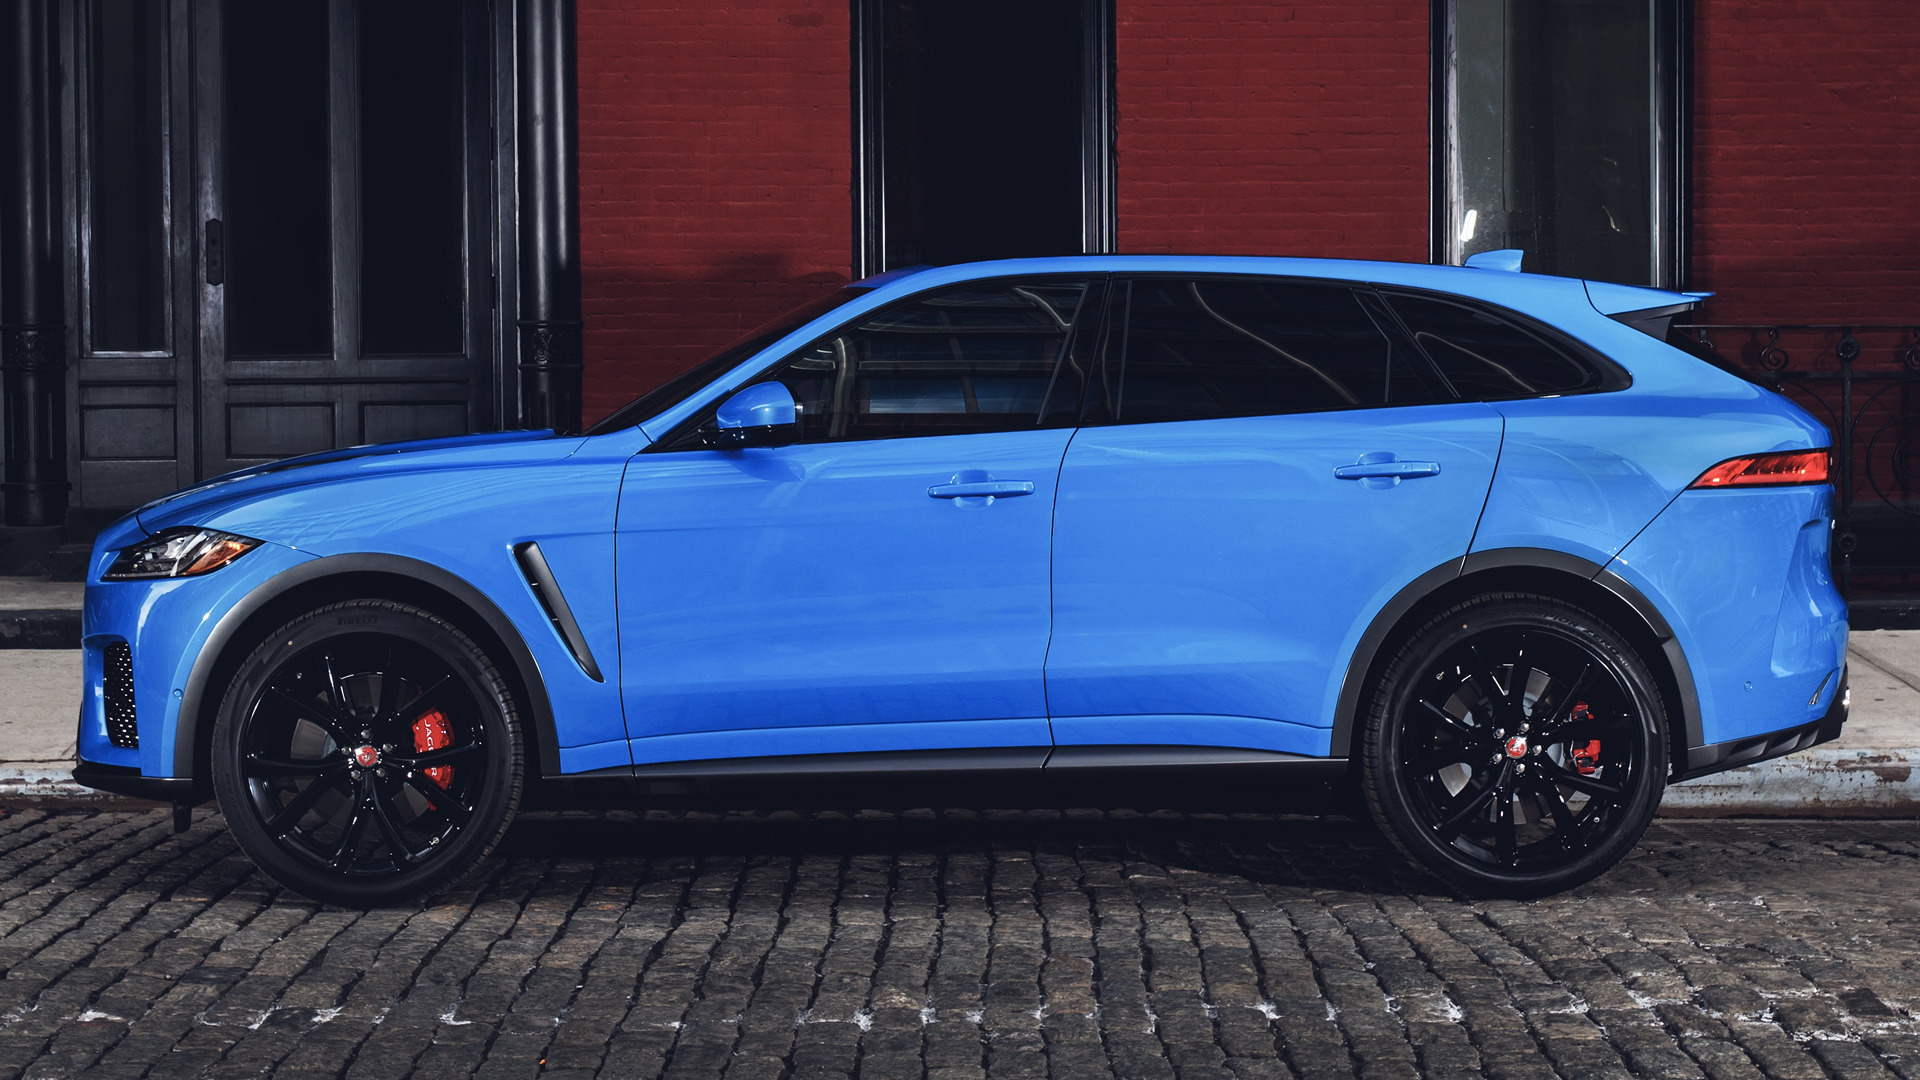 Jaguar F-Pace SVR (2019) US Wallpapers and HD Images - Car ...